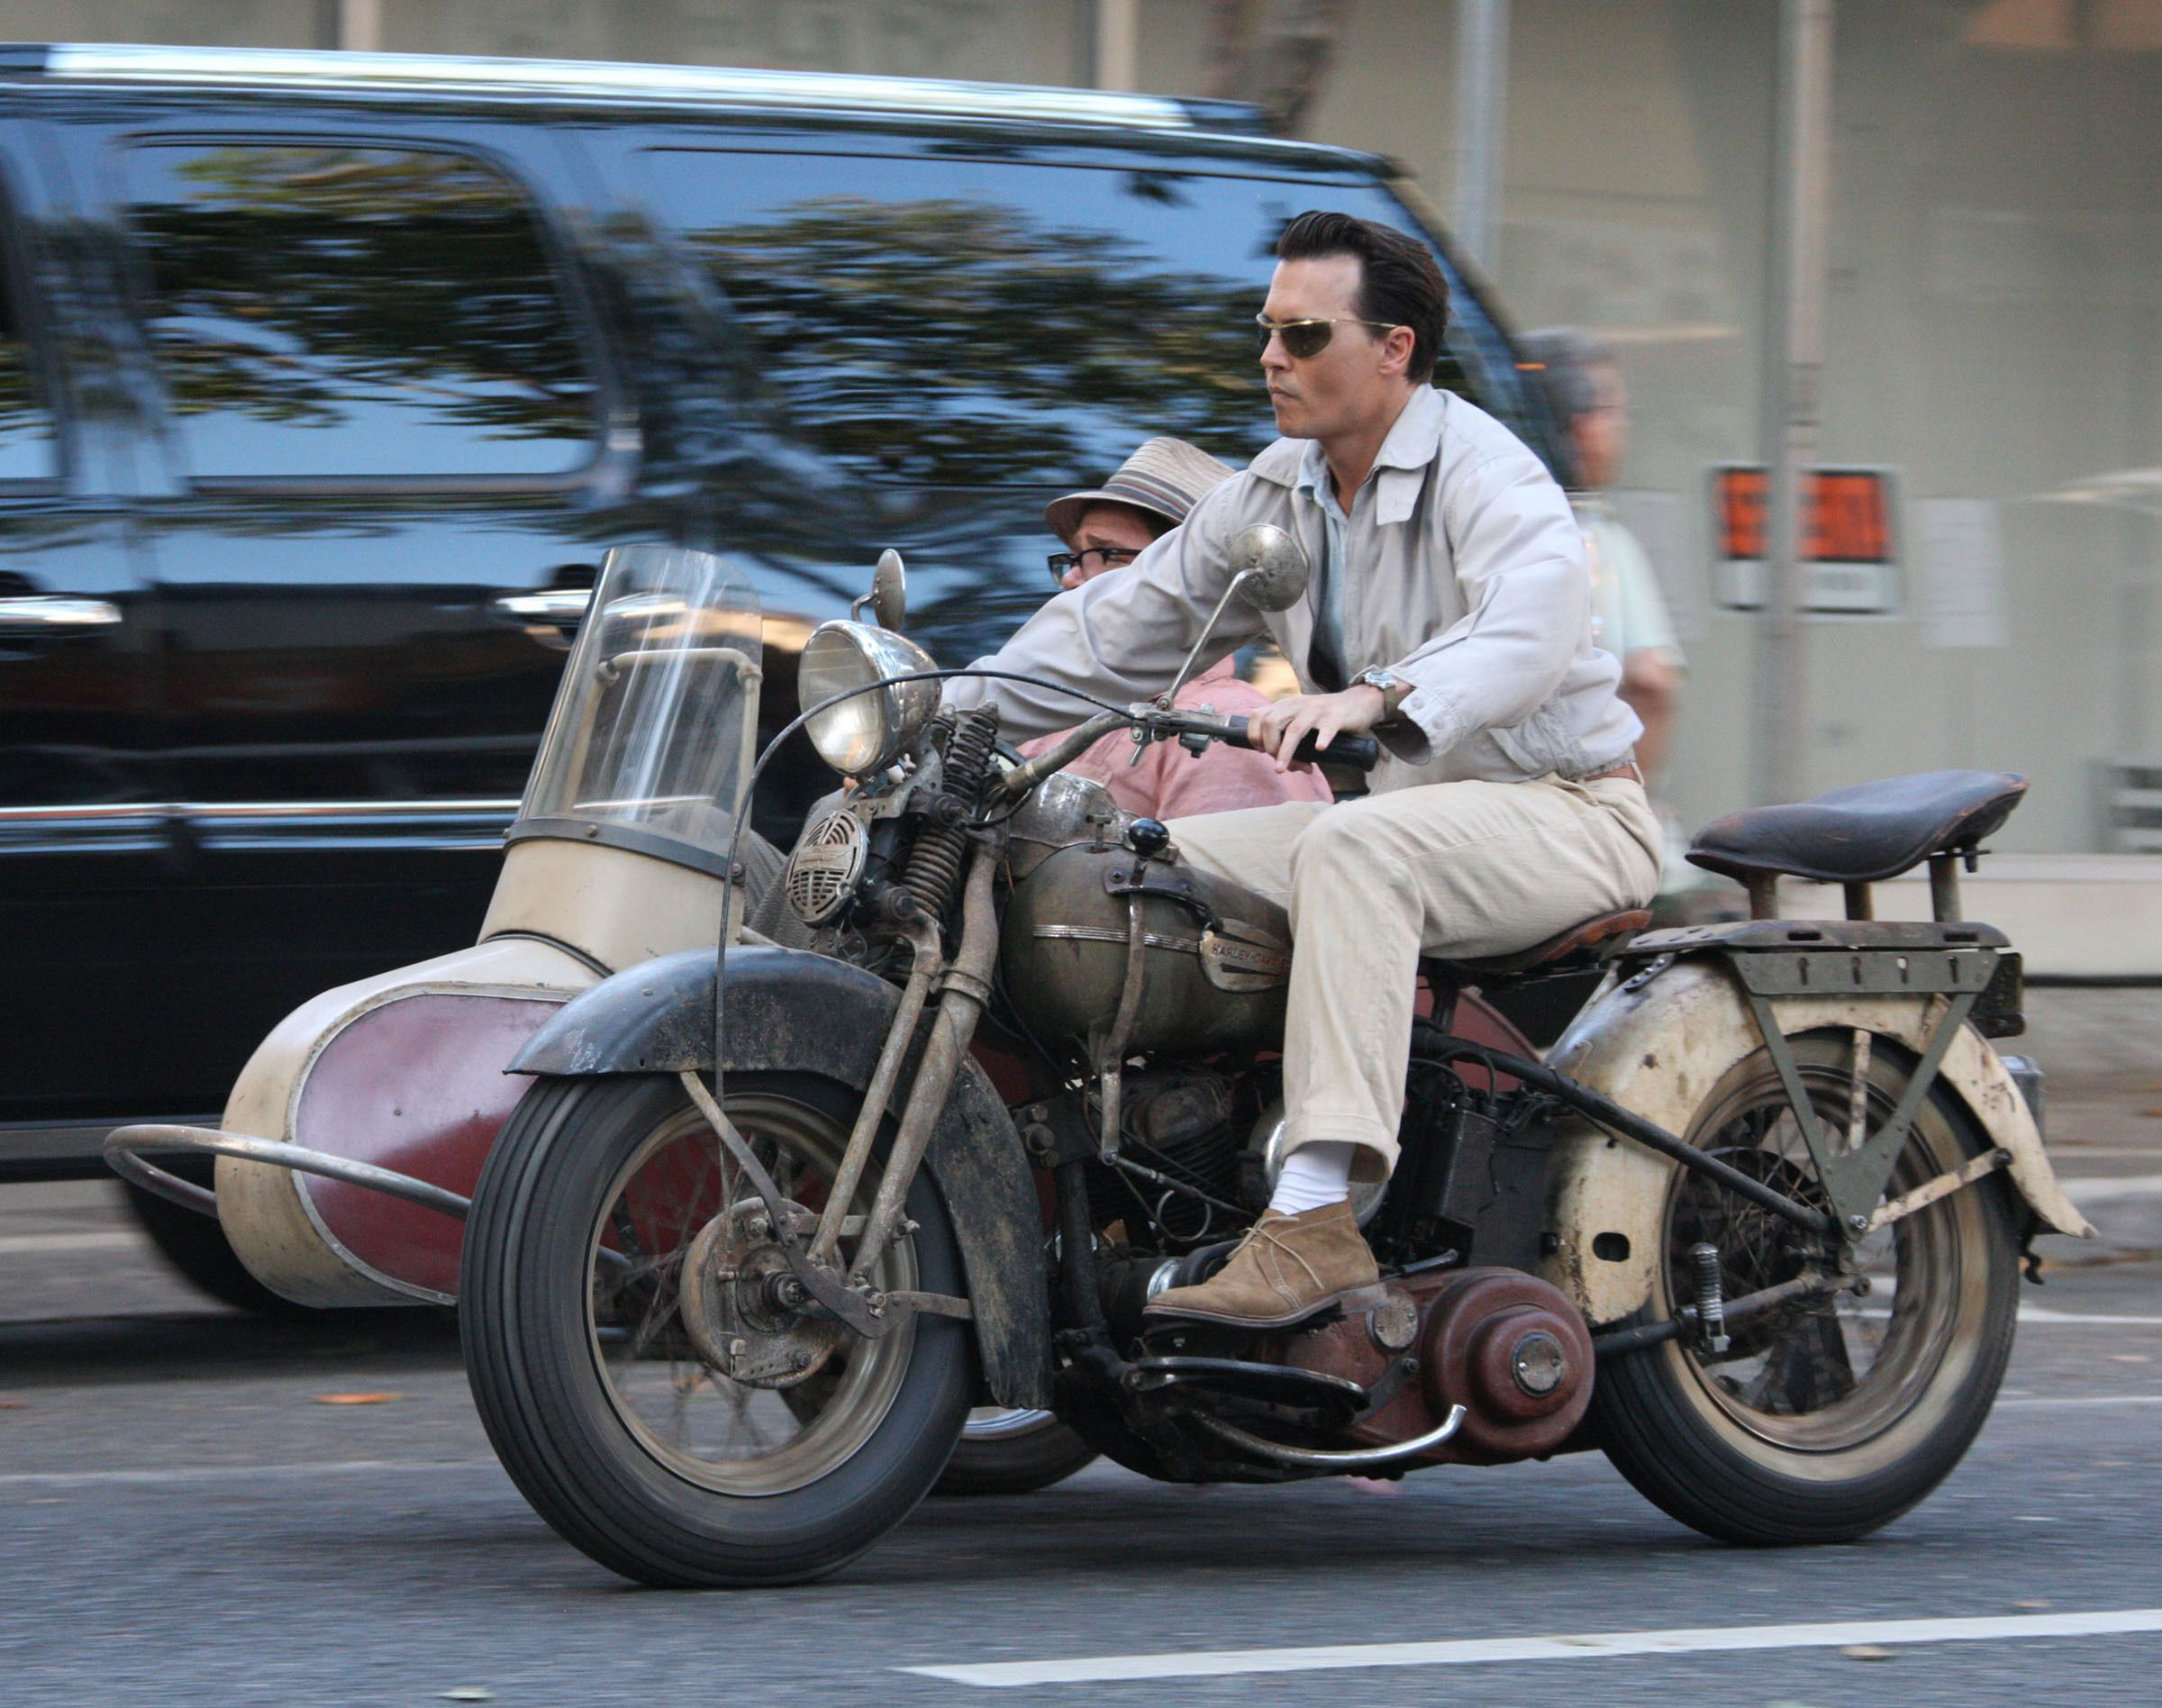 johnny depp on bike